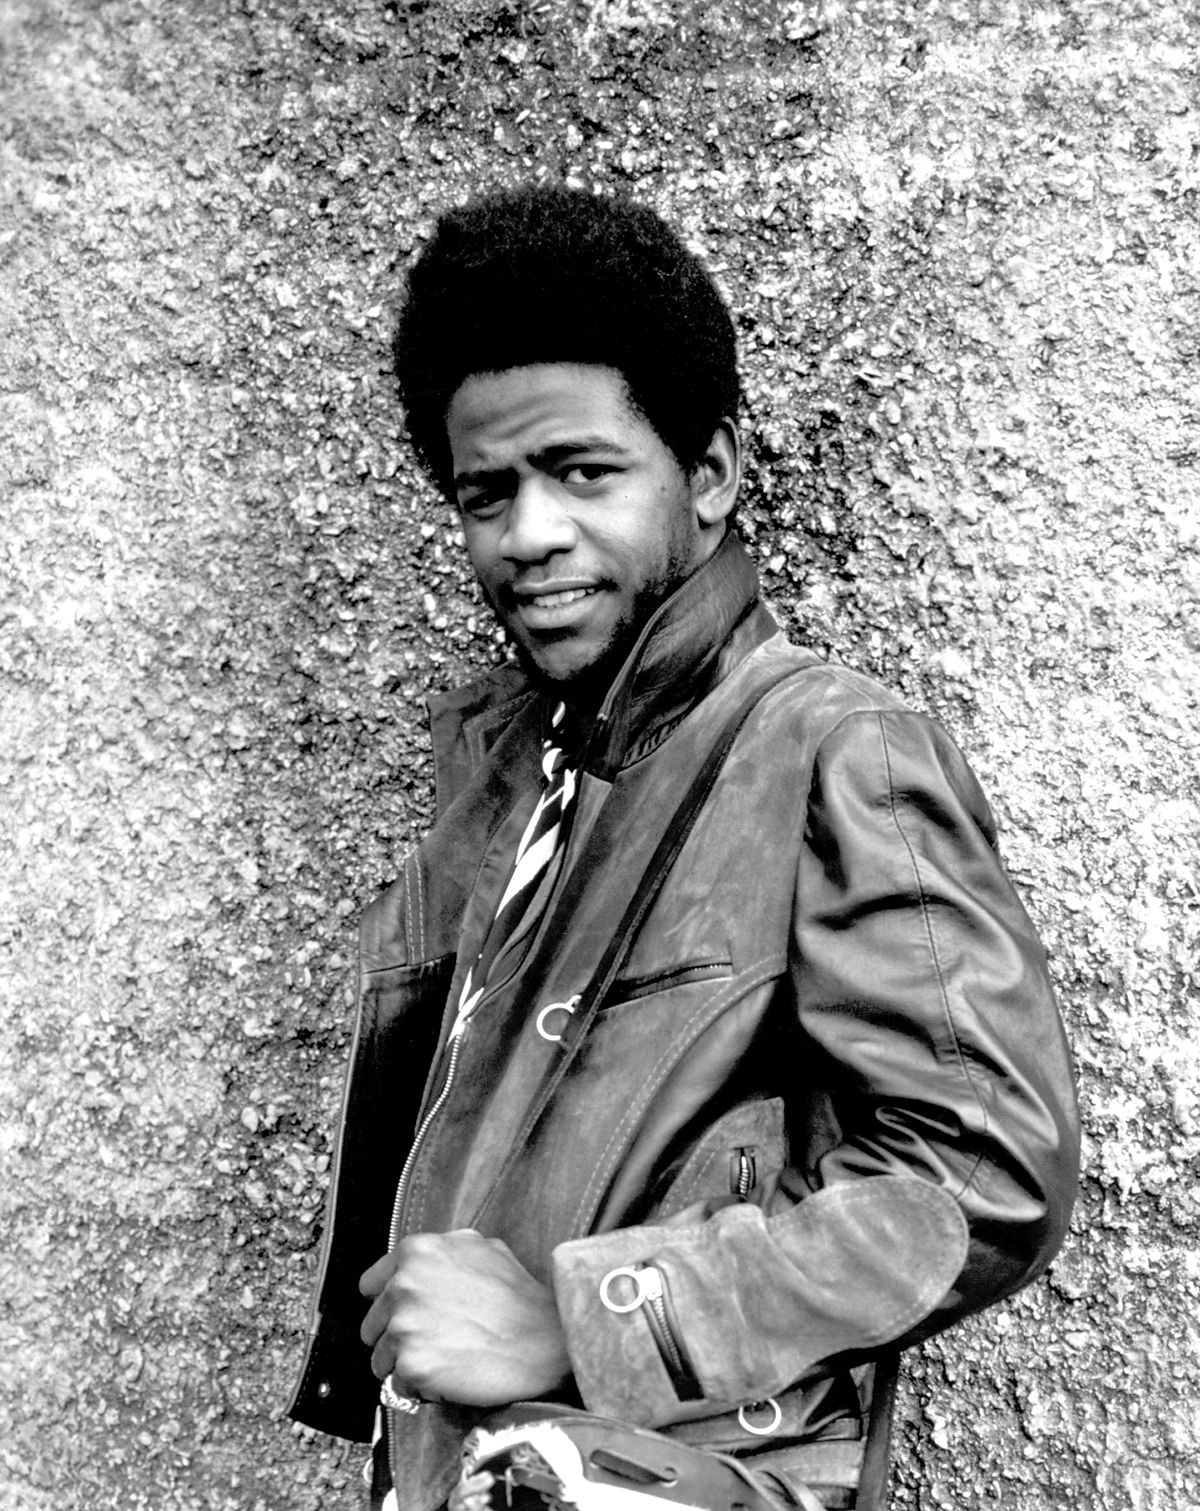 Al Green Born In Forrest City Arkansas To Sharecroppers Albert Made A Name For Himself The 1970s As One Of Greatest Voices Soul Music